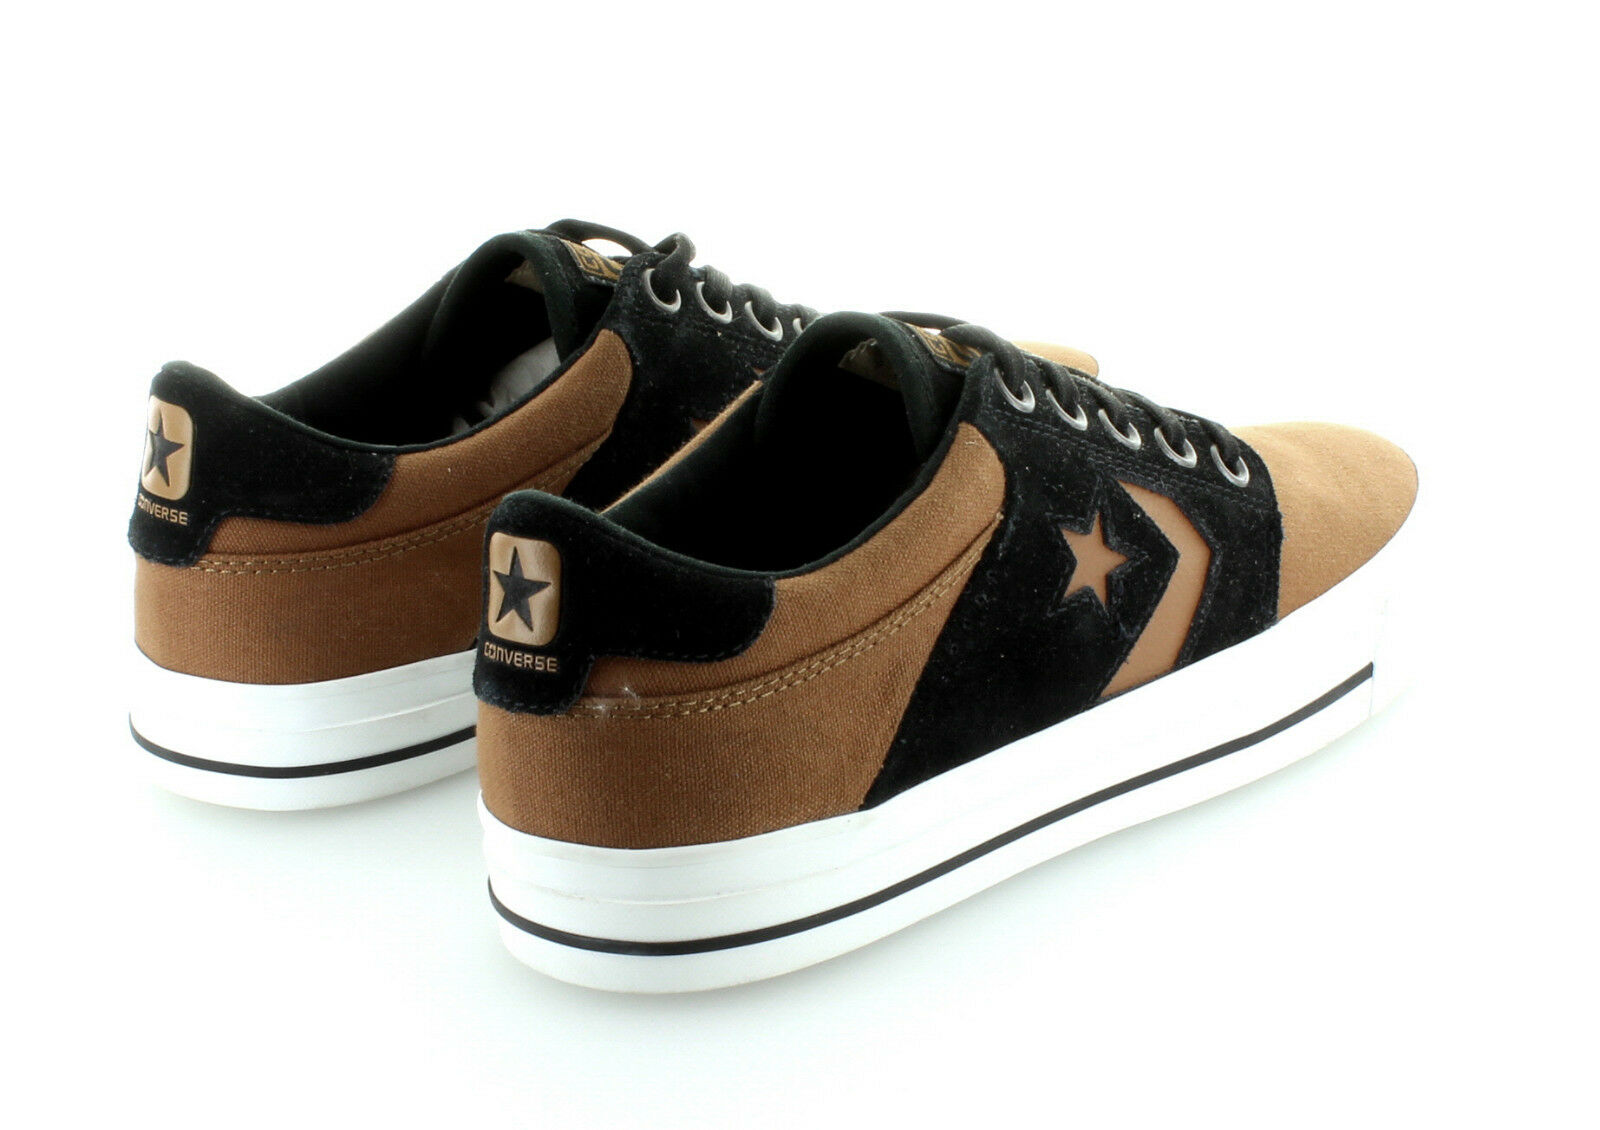 Converse Cons Tre Rubber Star Ox Canvas Suede Rubber Tre Black White Gr. 42,5  / 43 US 9 b6ee7a